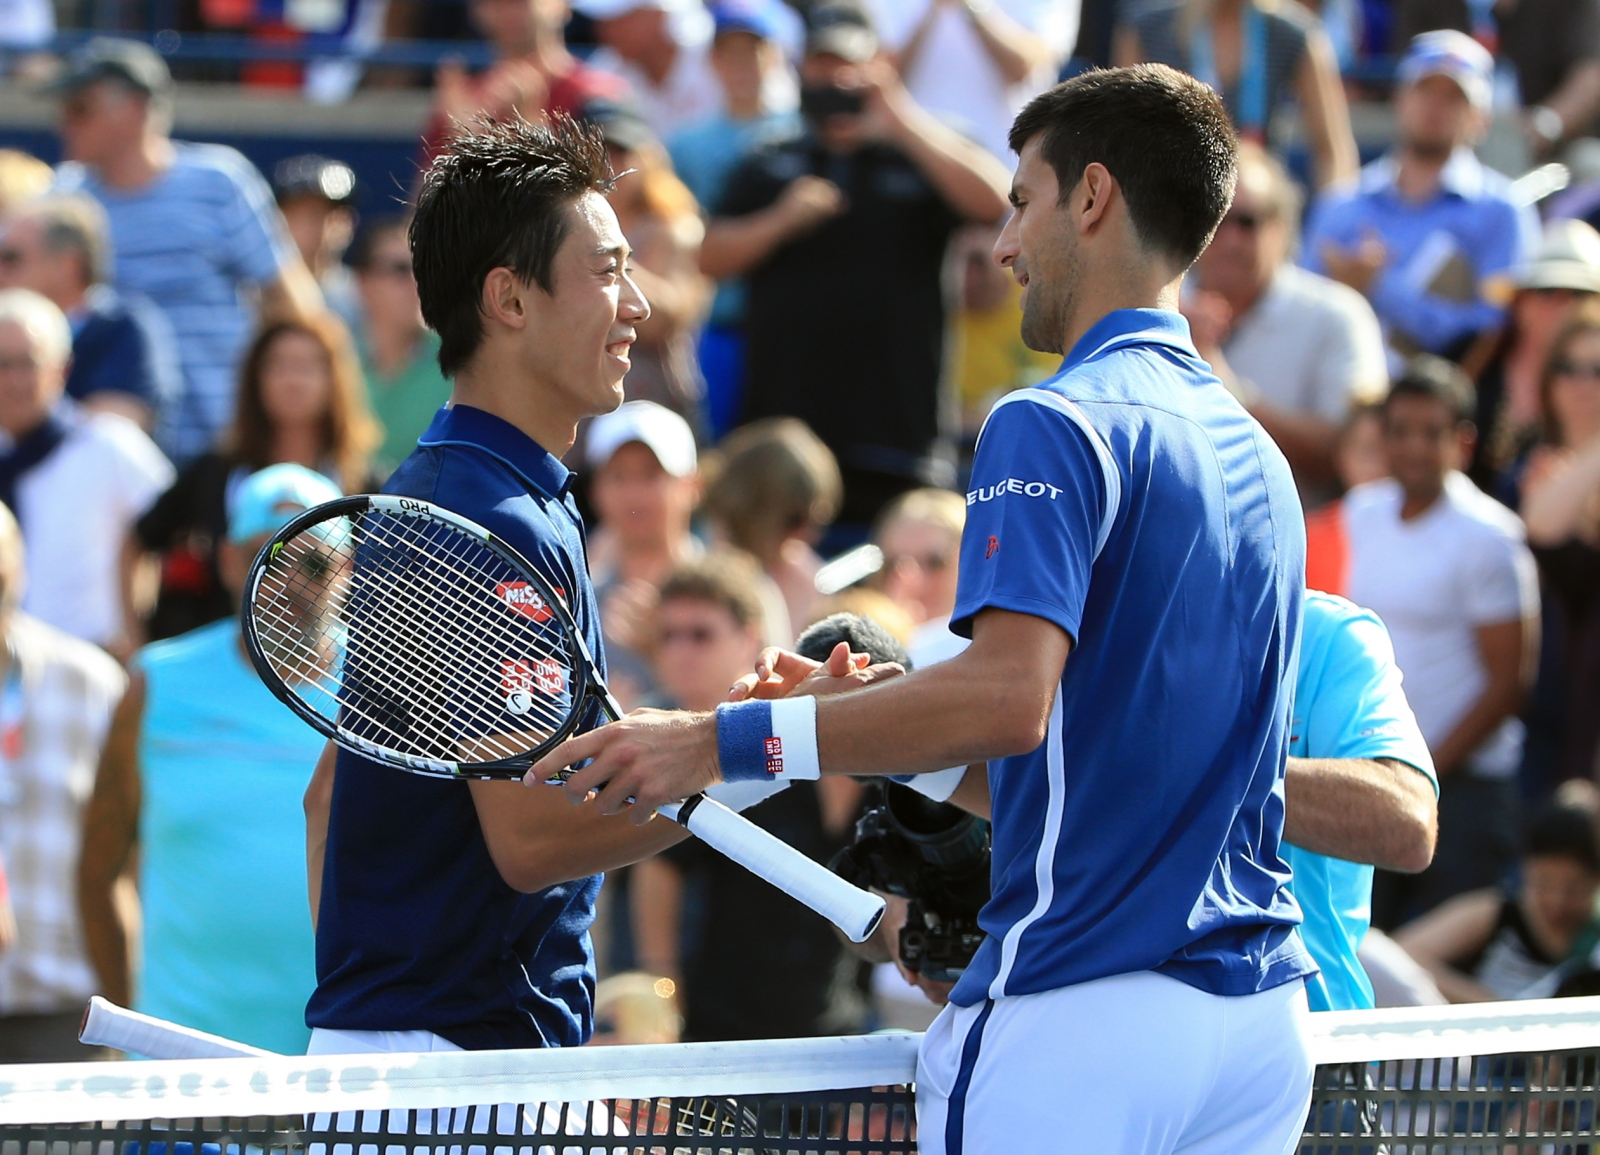 Barclays atp world tour finals 2021 djokovic vs nishikori betting bra betting sidore